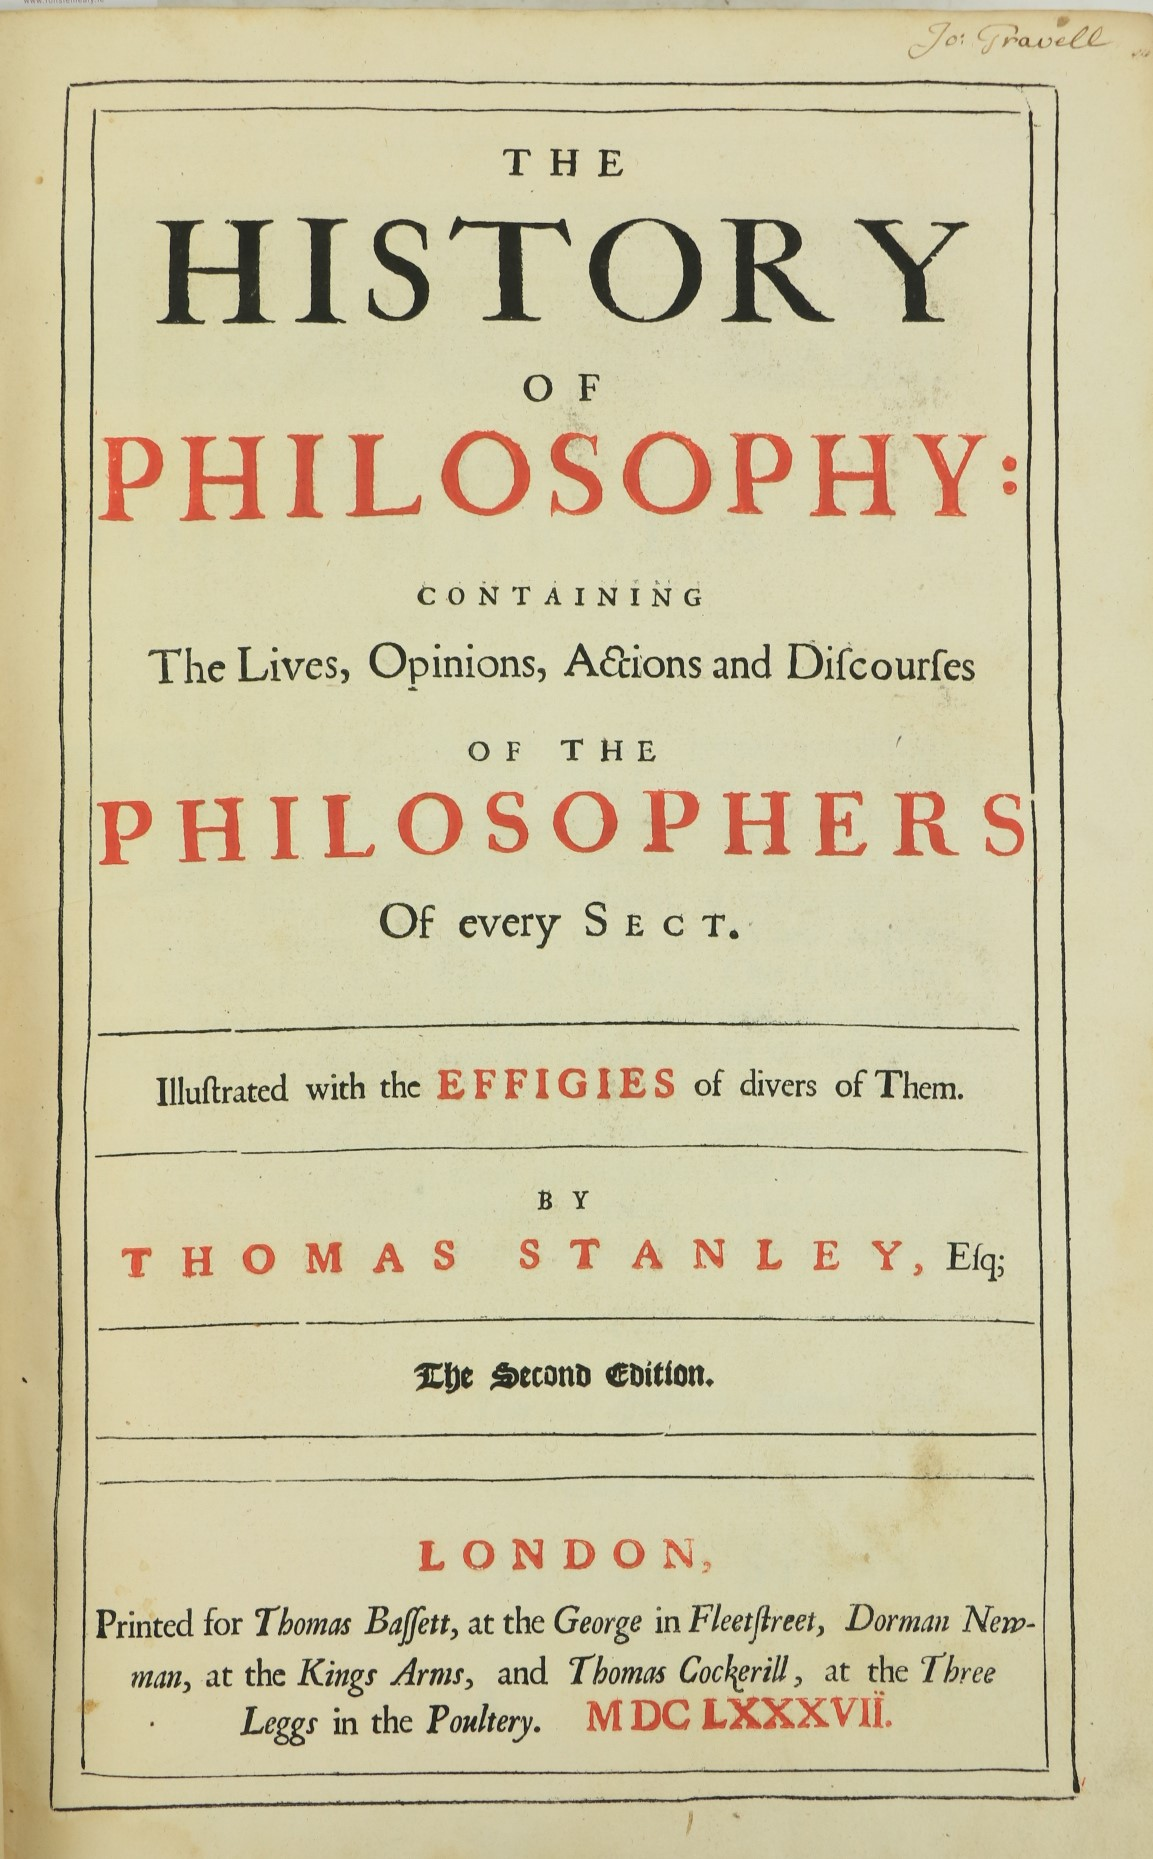 Stanley (Thos.)ÿThe History of Philosophy: Containing The Lives, Opinions, Actions and Discourses of